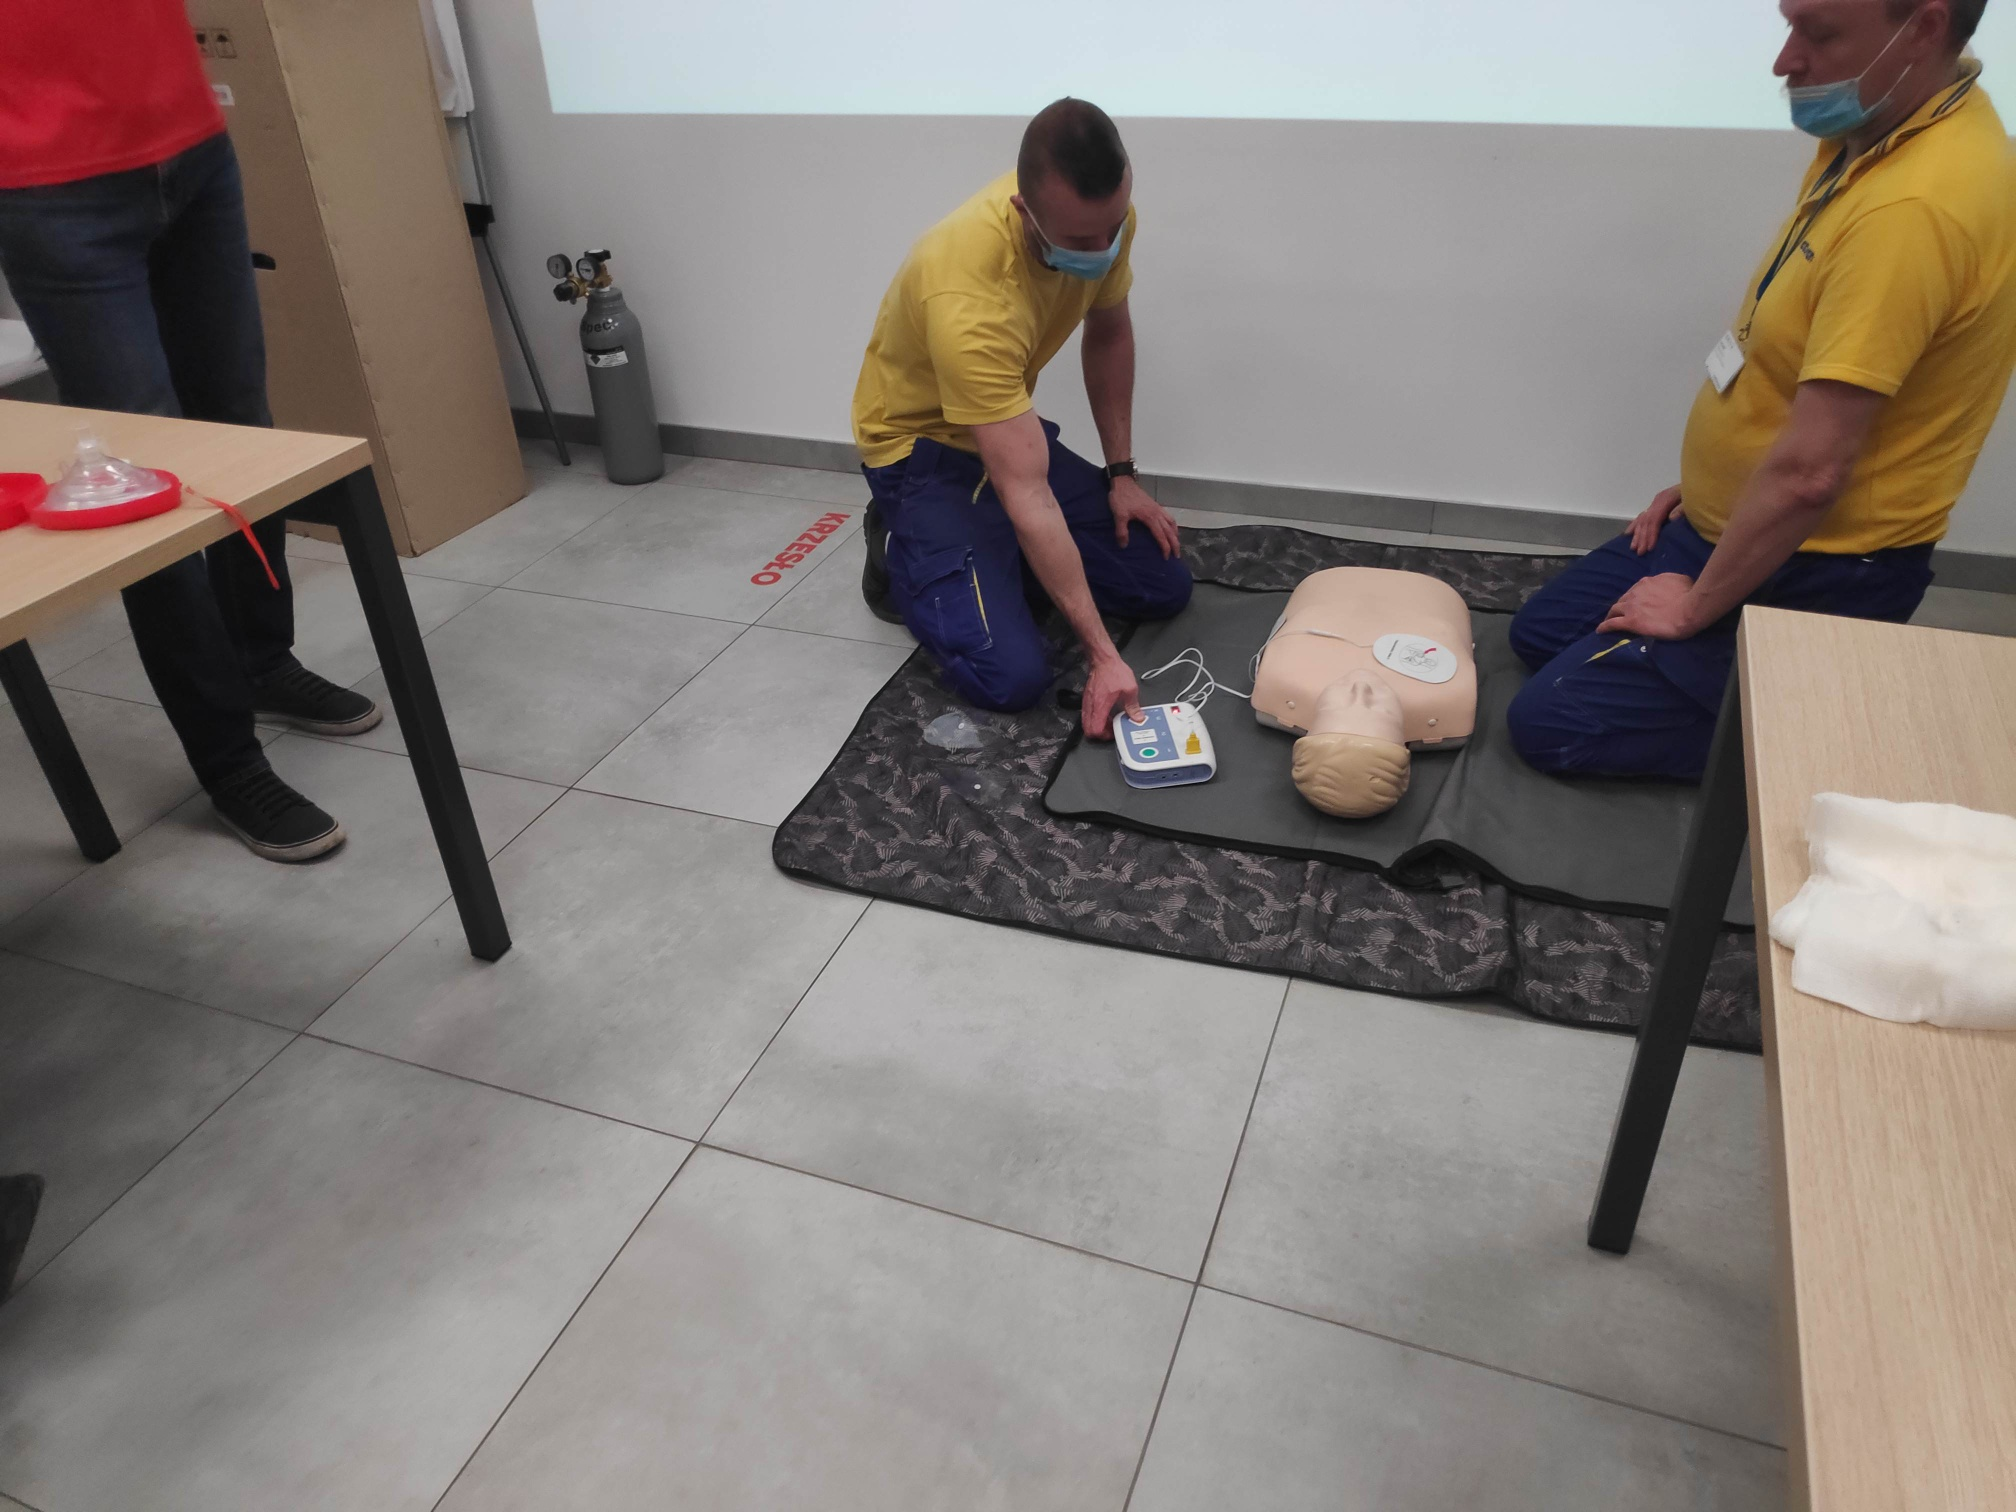 BLS + AED